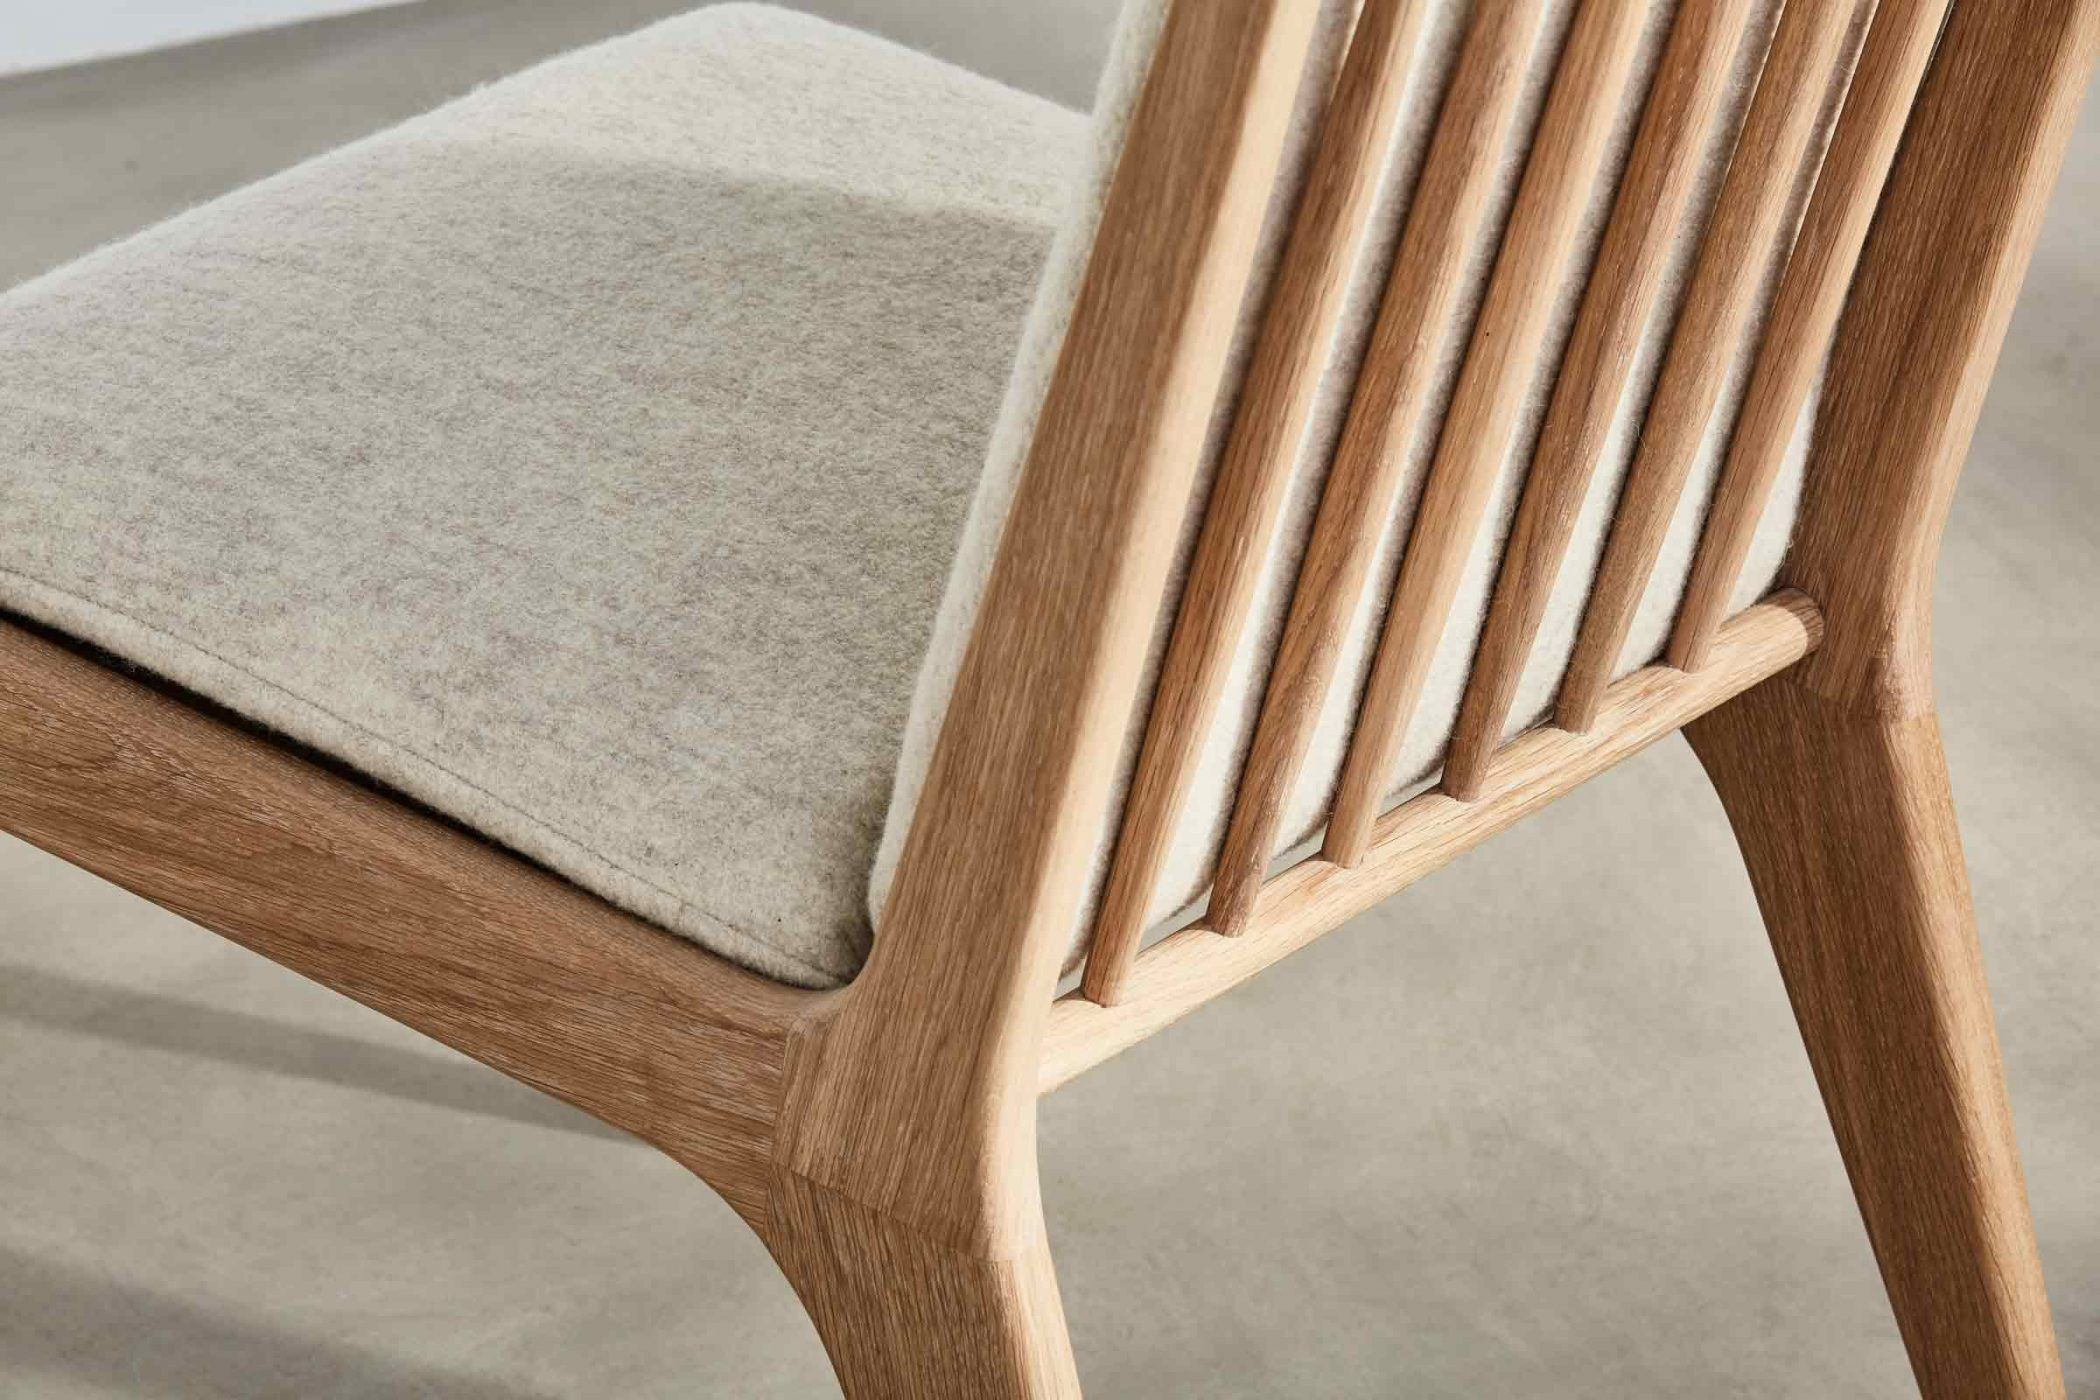 Spindle Backed Chair With White Wool Upholsterery